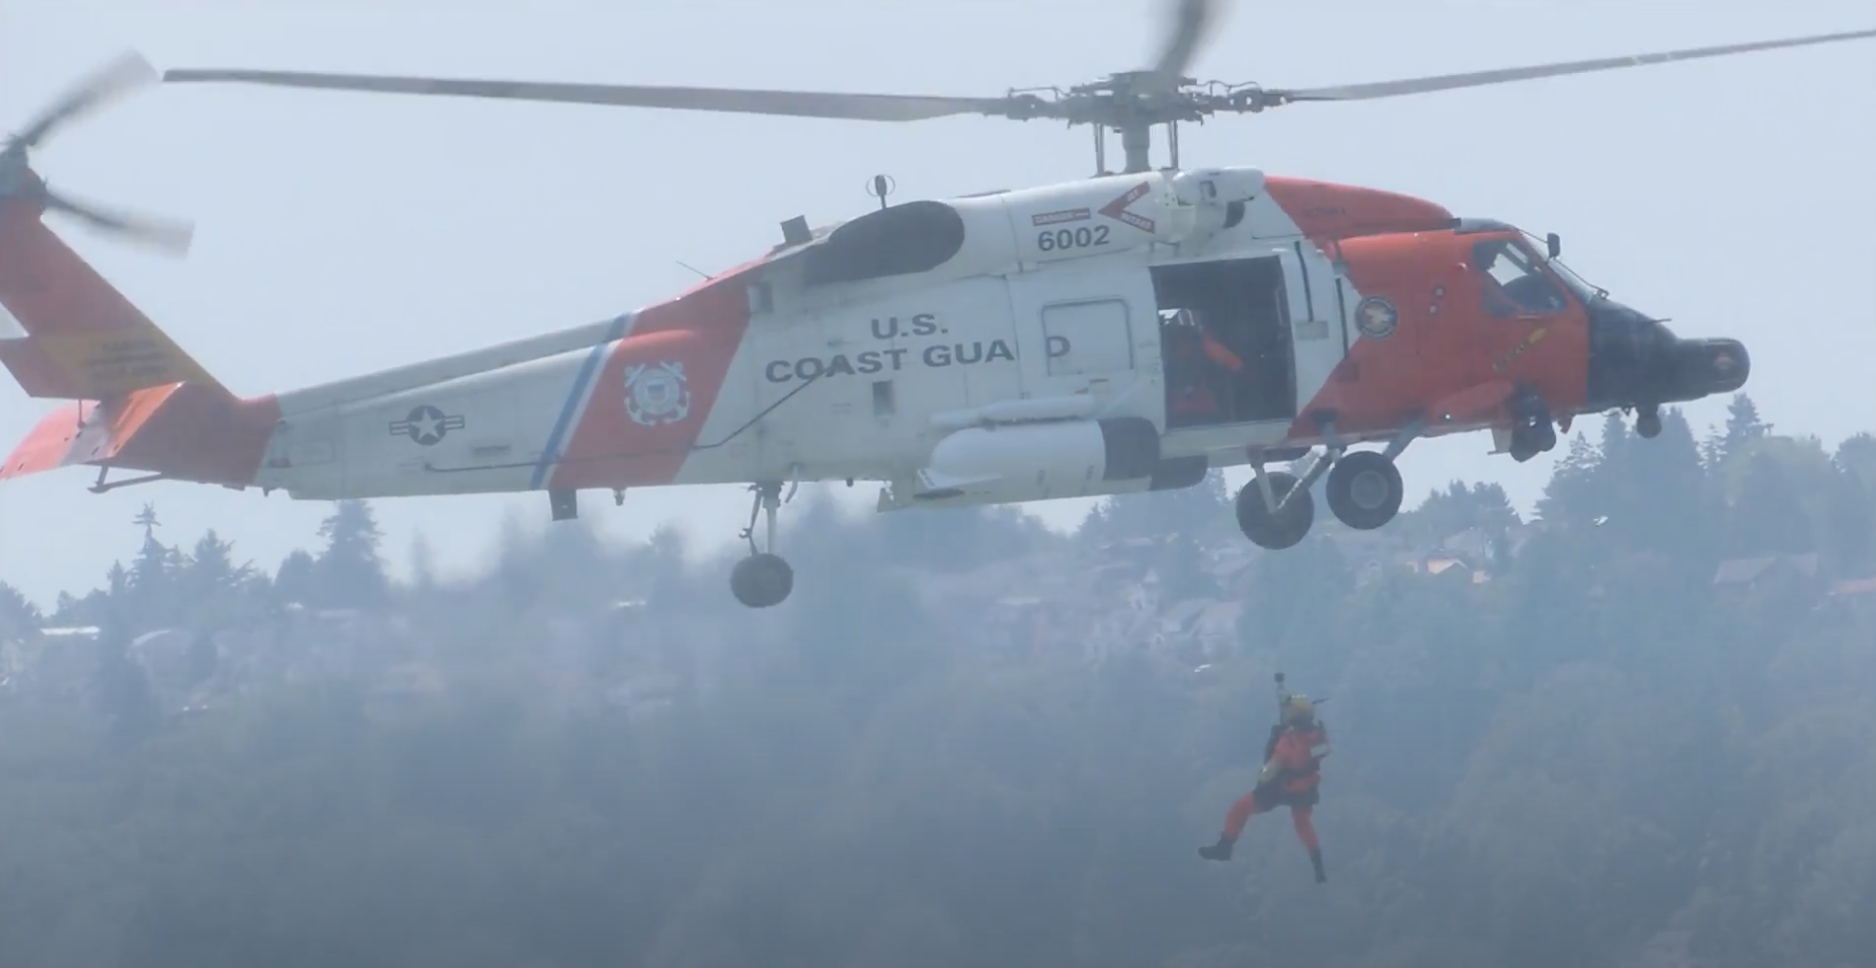 A helicopter airlifts someone